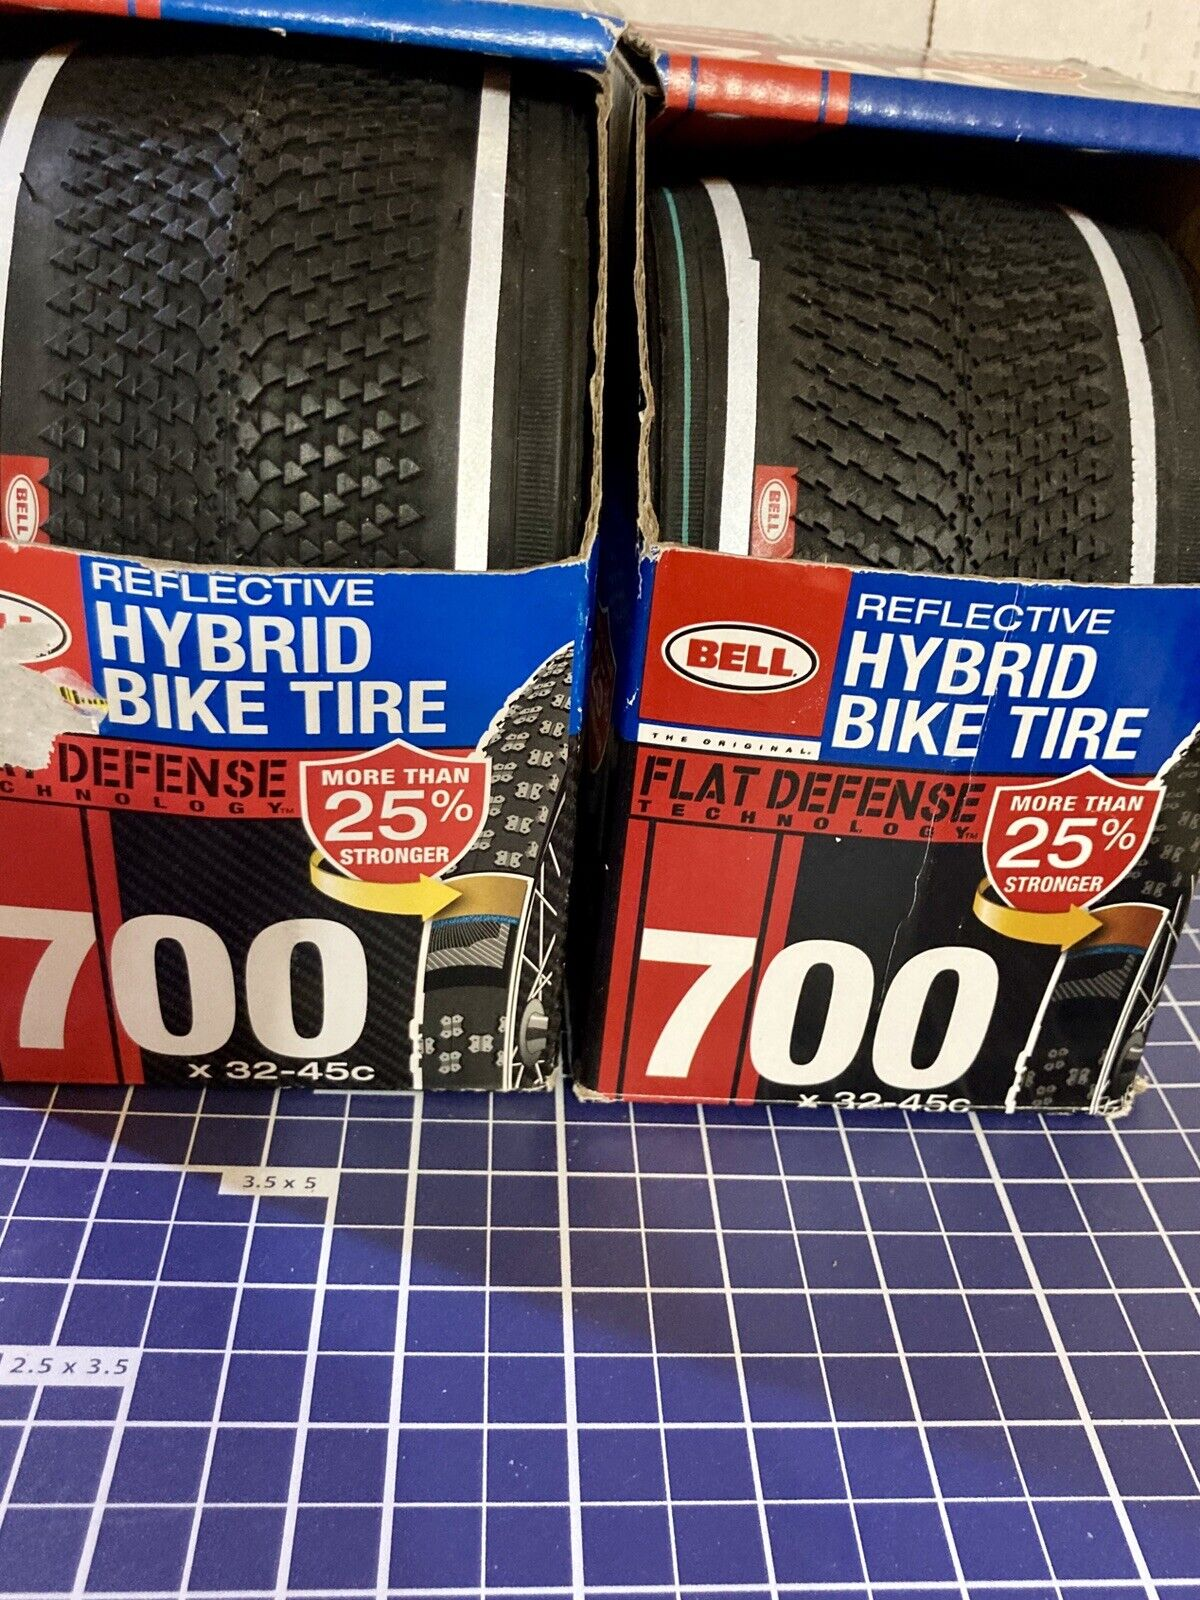 NEW LOT of 2 Bell Reflective Hybrid Bike Tires 700 x 38c Replaces Sz 32mm 45mm